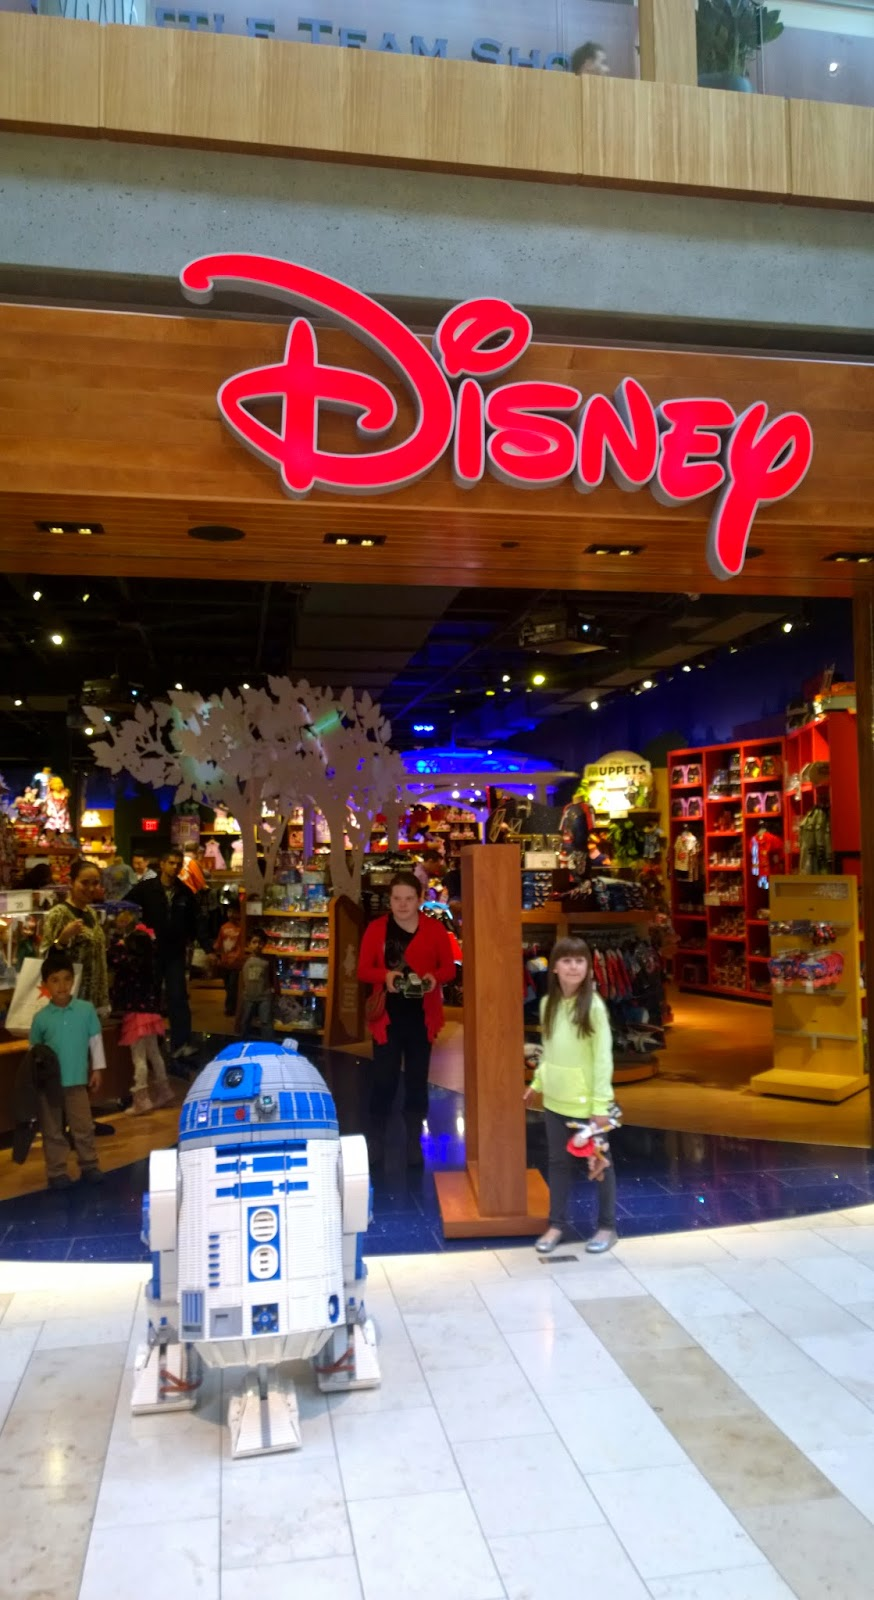 L3-G0 at the local Disney Store